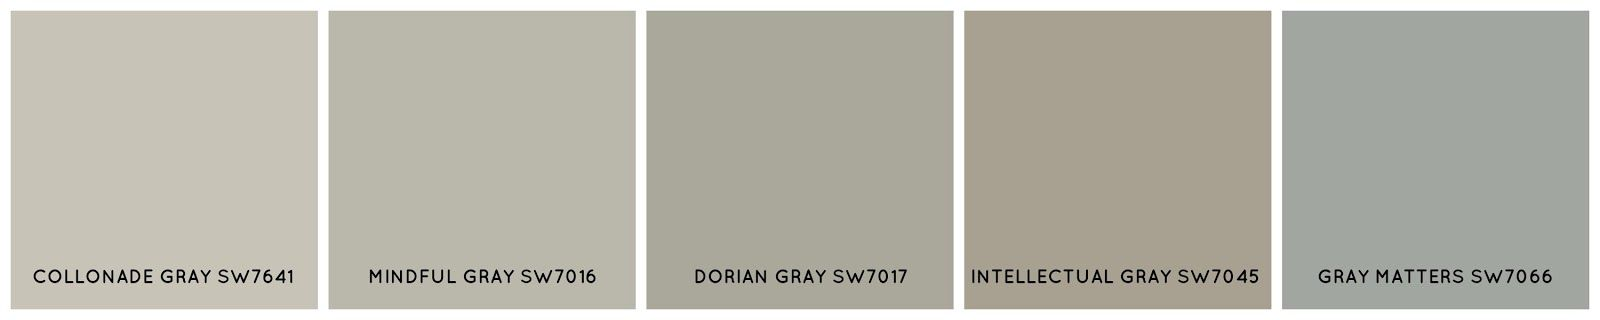 Collonade gray sw7641 a popular greige similar to bm Sherwin williams collonade gray exterior